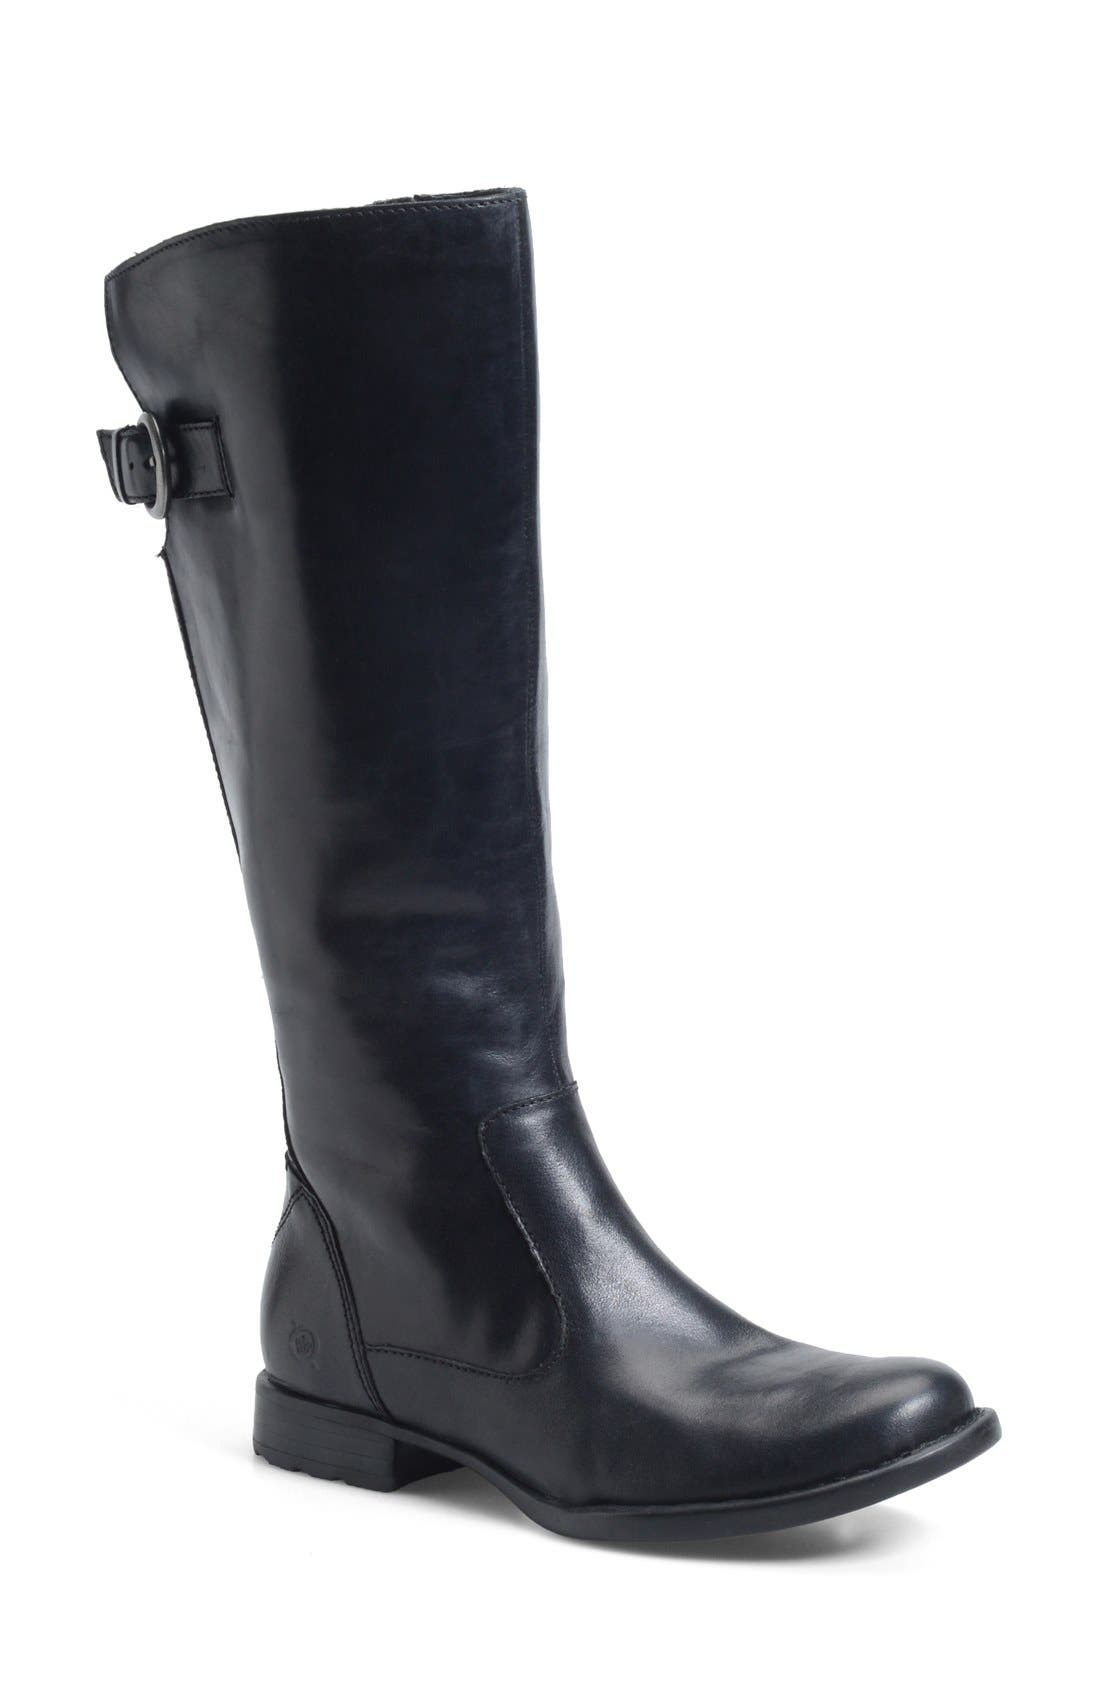 Main Image - Børn 'Lottie' Round Toe Boot (Women)